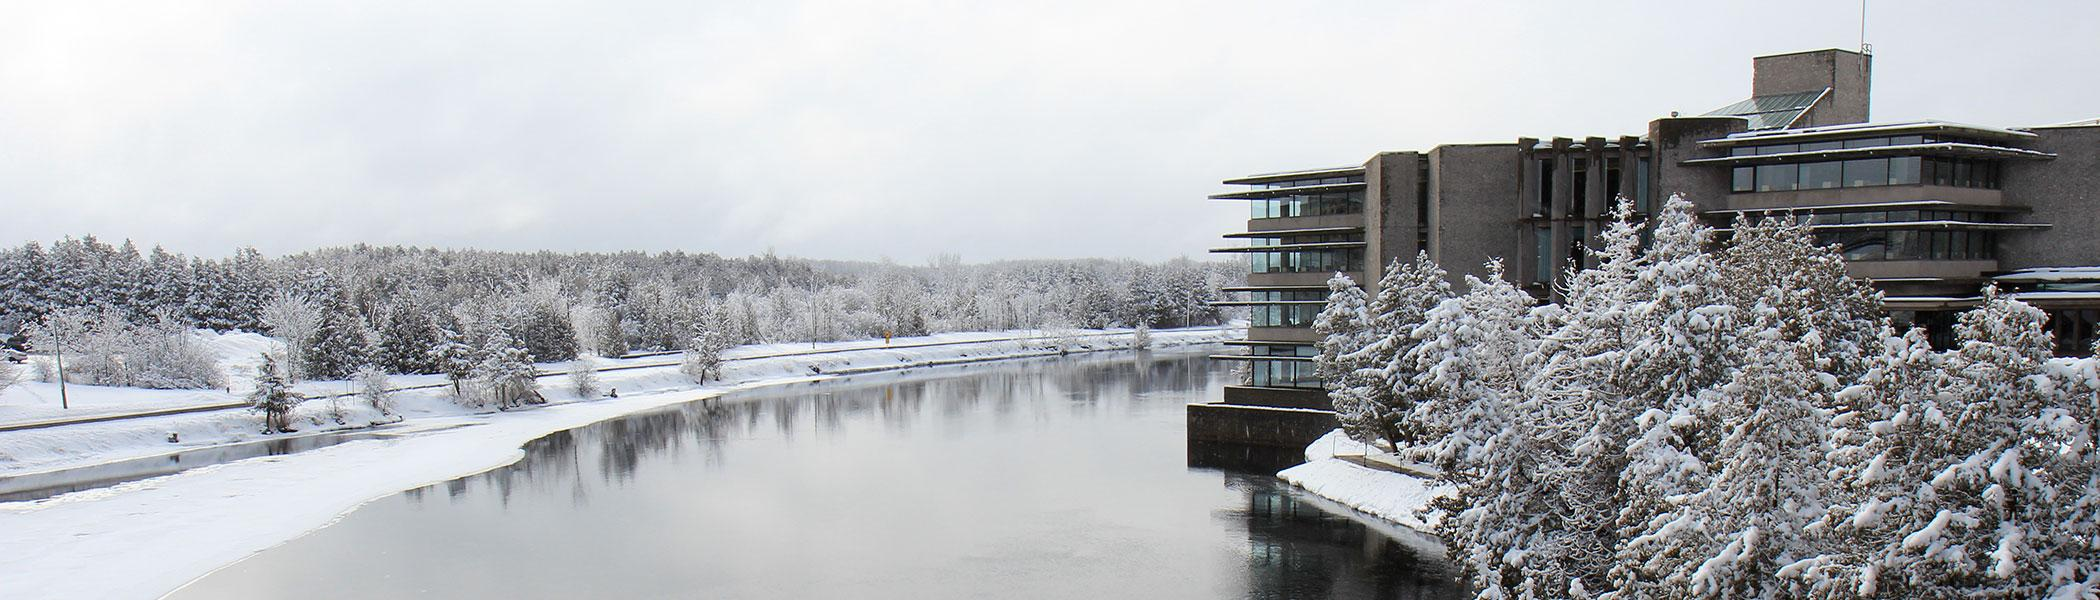 Bata Library from Faryon Bridge in a snowy day